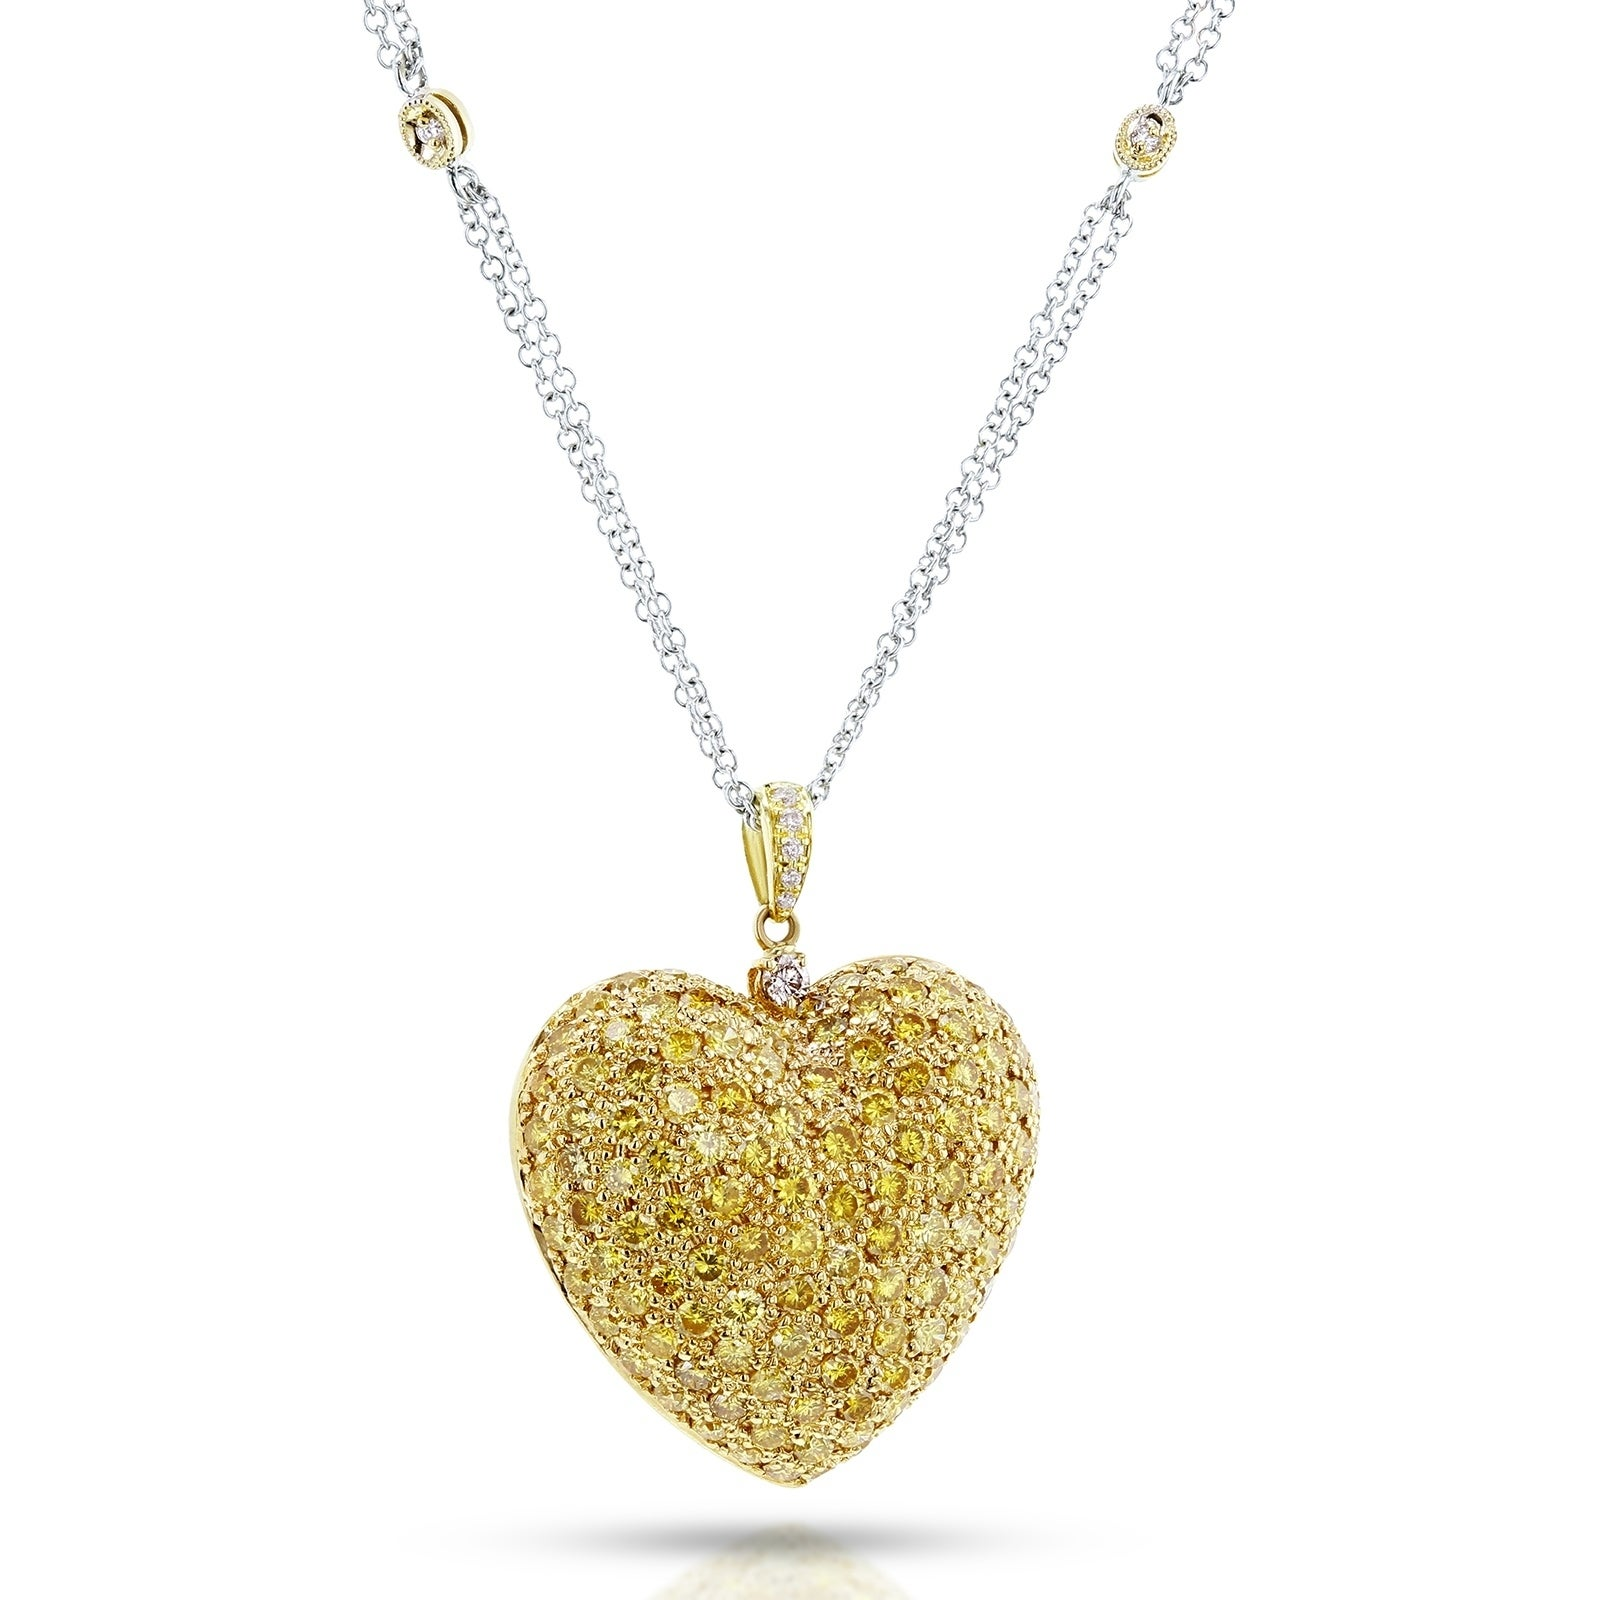 Shop Annello By Kobelli 18k Yellow Gold Necklace 3 4 5ct Tdw Fancy Yellow Diamond Pave Set Dome Heart Pendant 18in Chain Certified Overstock 21526814